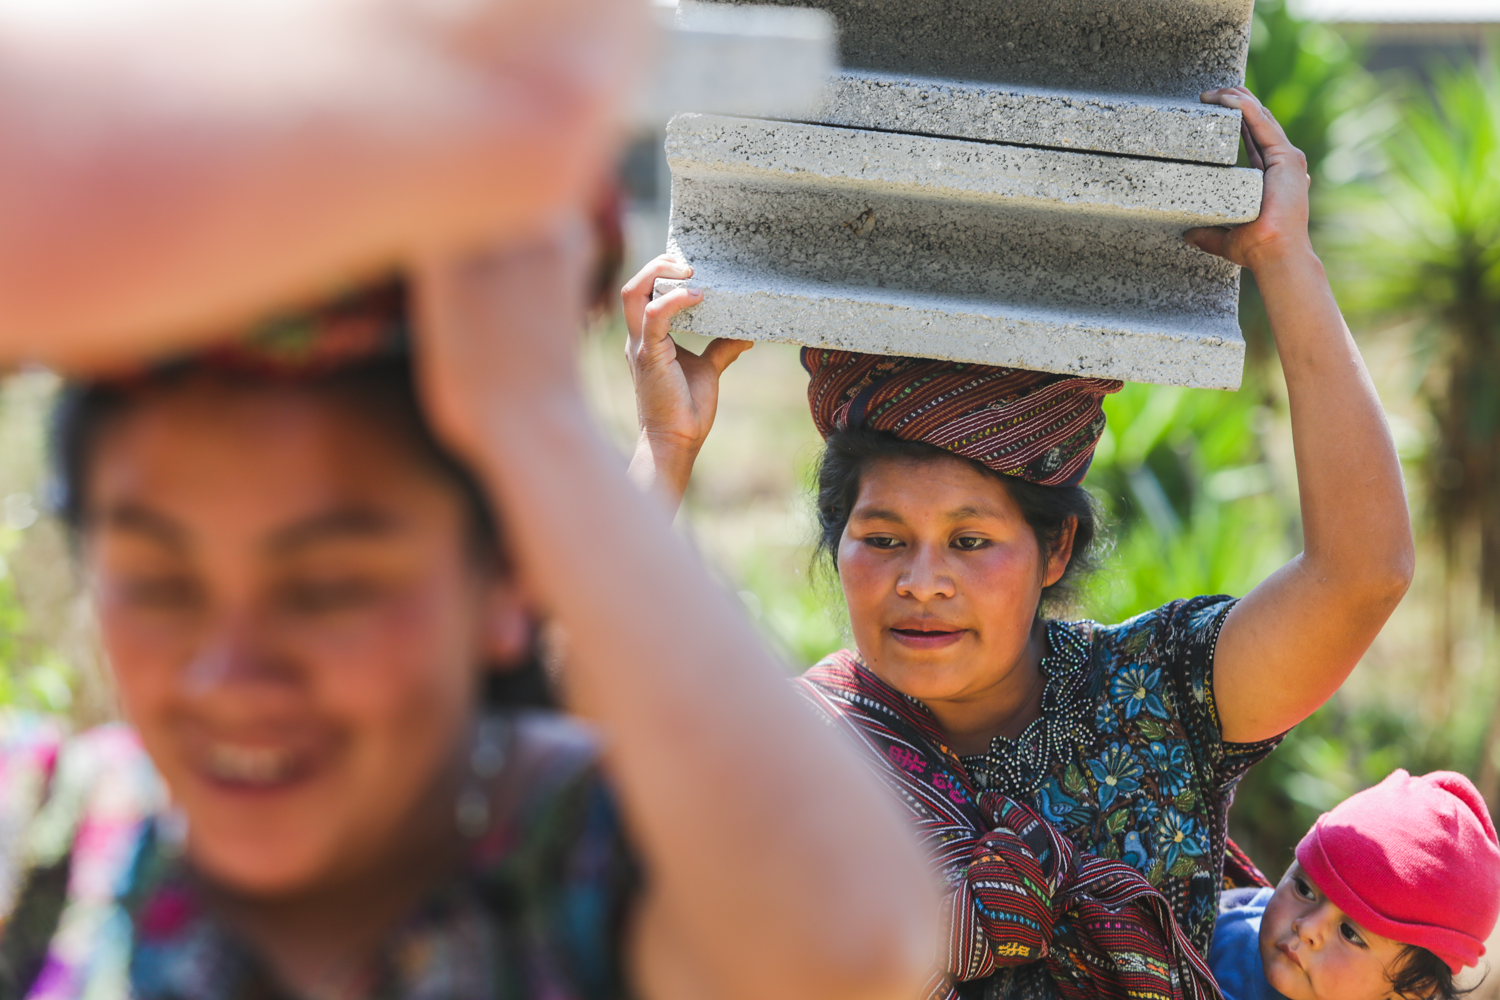 Mothers from Peña Blanca help carry concrete blocks to the Peña Blanca Preschool for volunteers to help build a wall around the school to protect the area. Peña Blanca is a small town in rural Guatemala primarily inhibited by indigenous families.